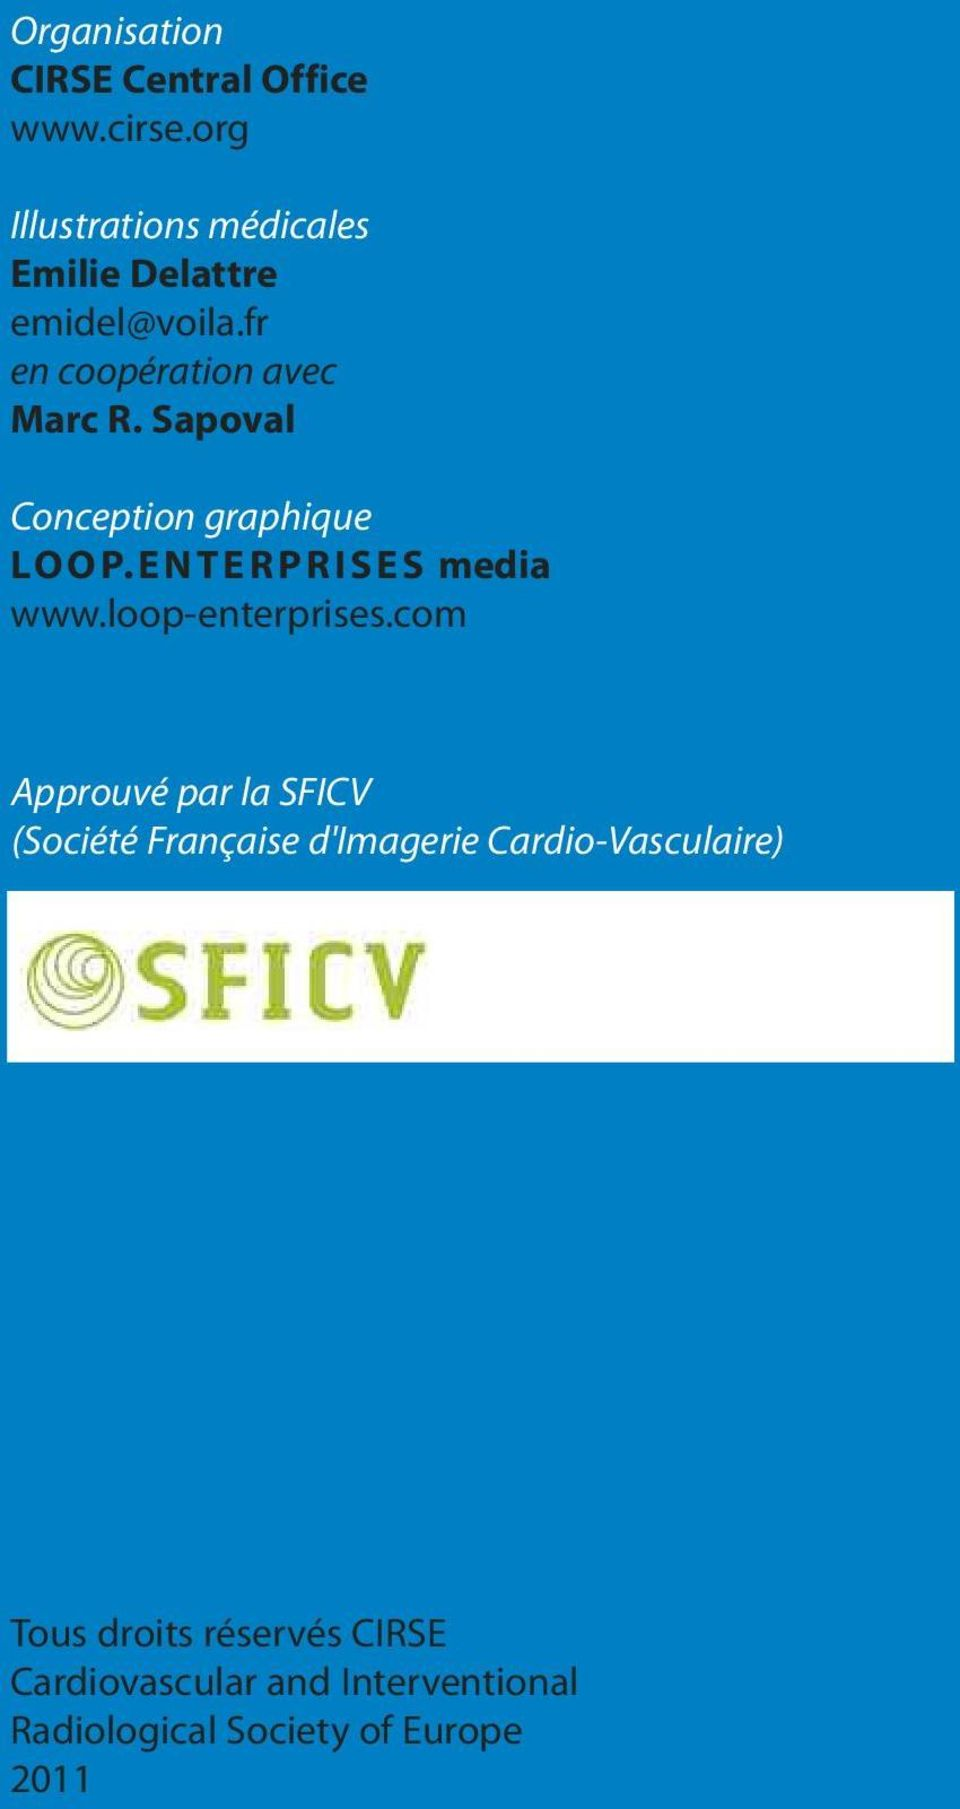 Sapoval Conception graphique LOOP. ENTERPRISES media www.loop-enterprises.